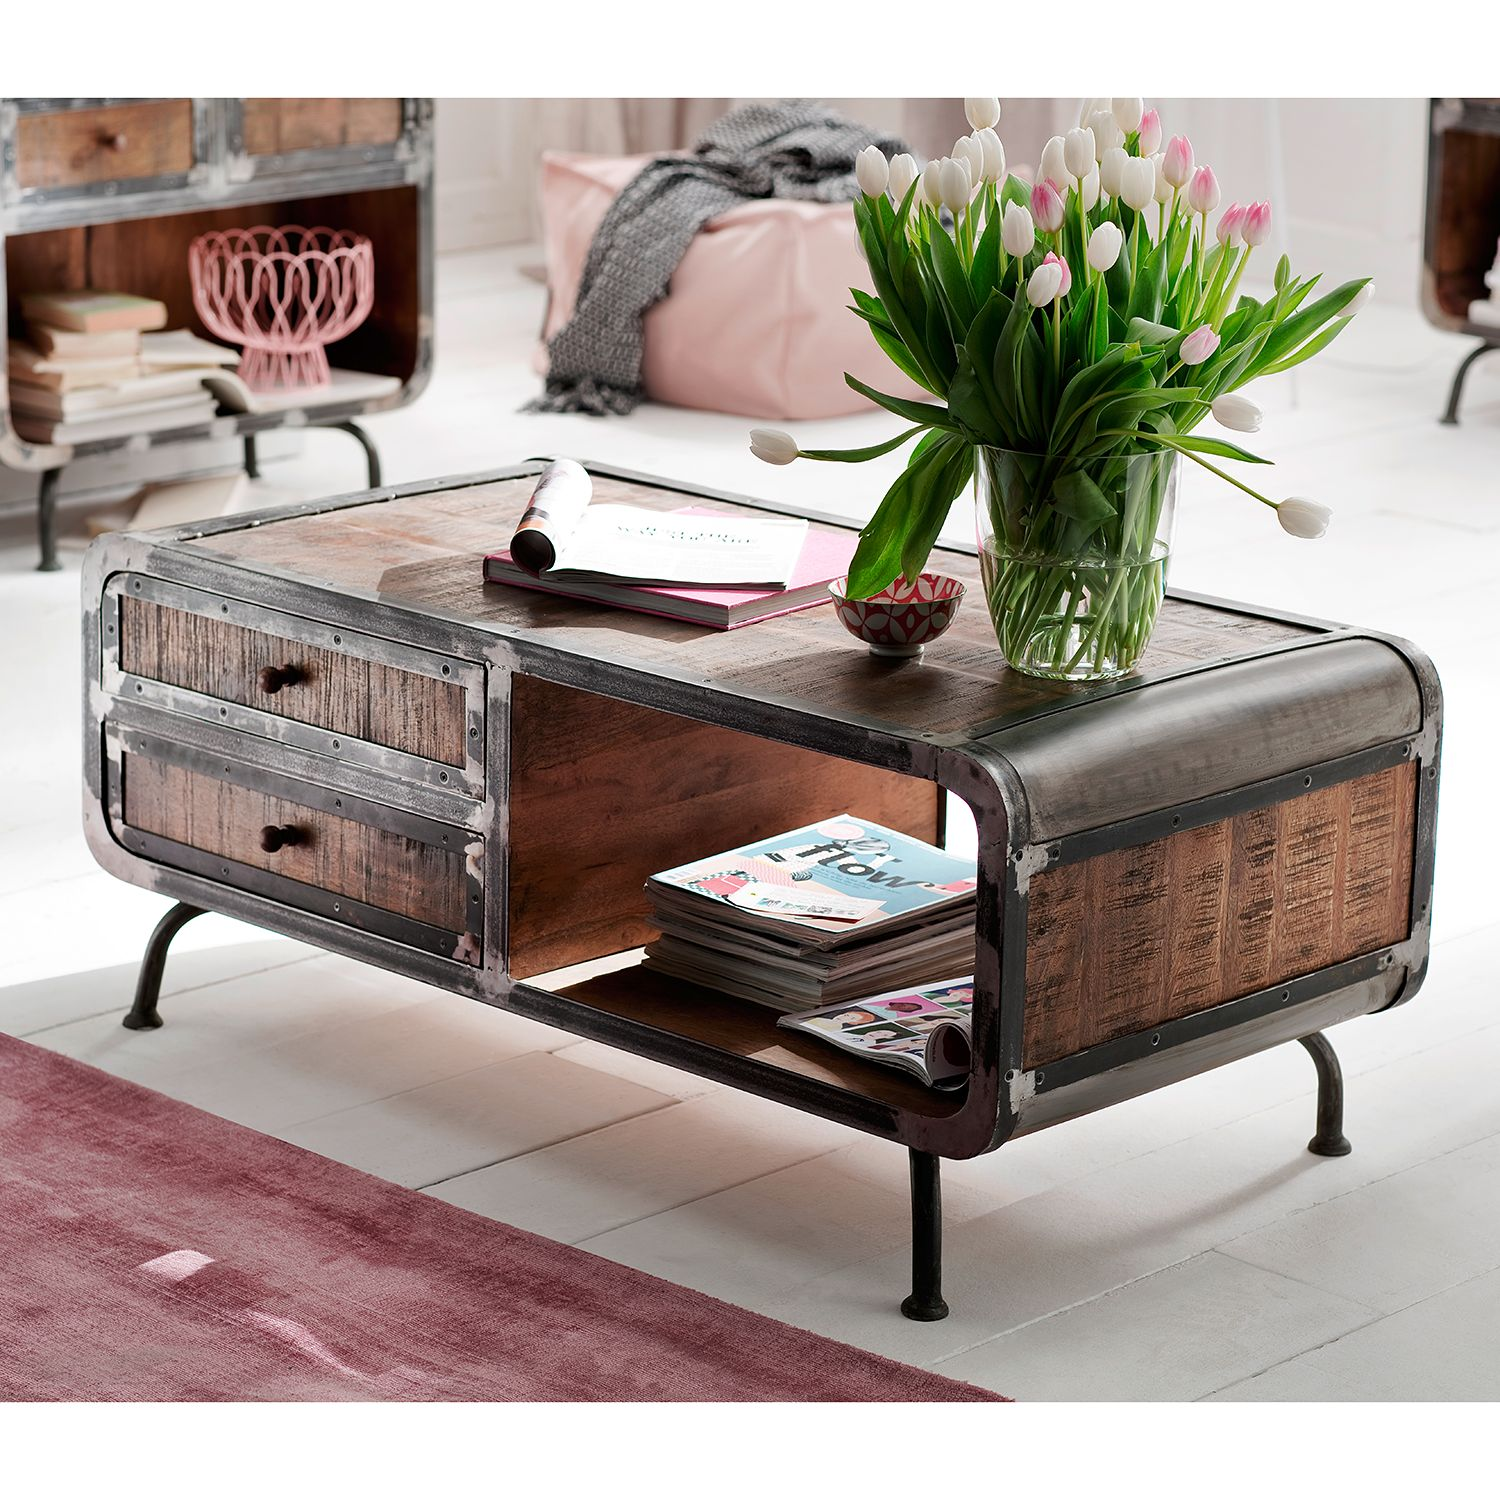 Table basse Wharton